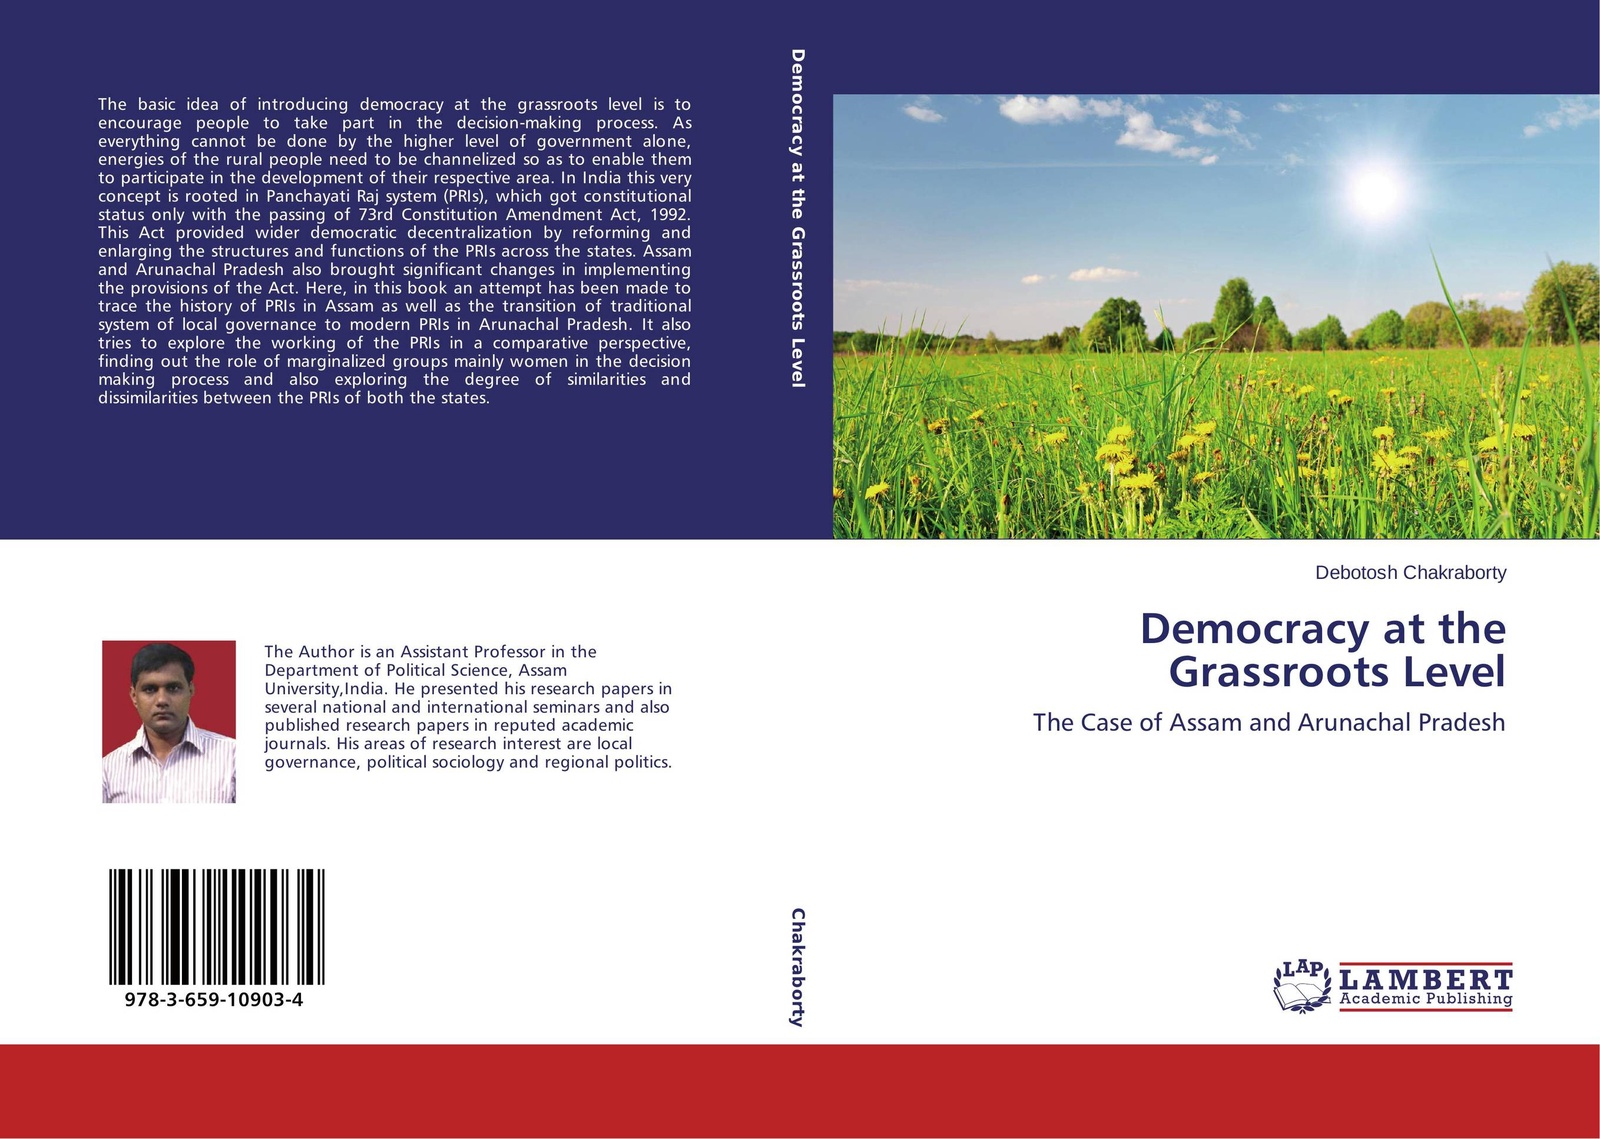 купить Debotosh Chakraborty Democracy at the Grassroots Level по цене 6190 рублей